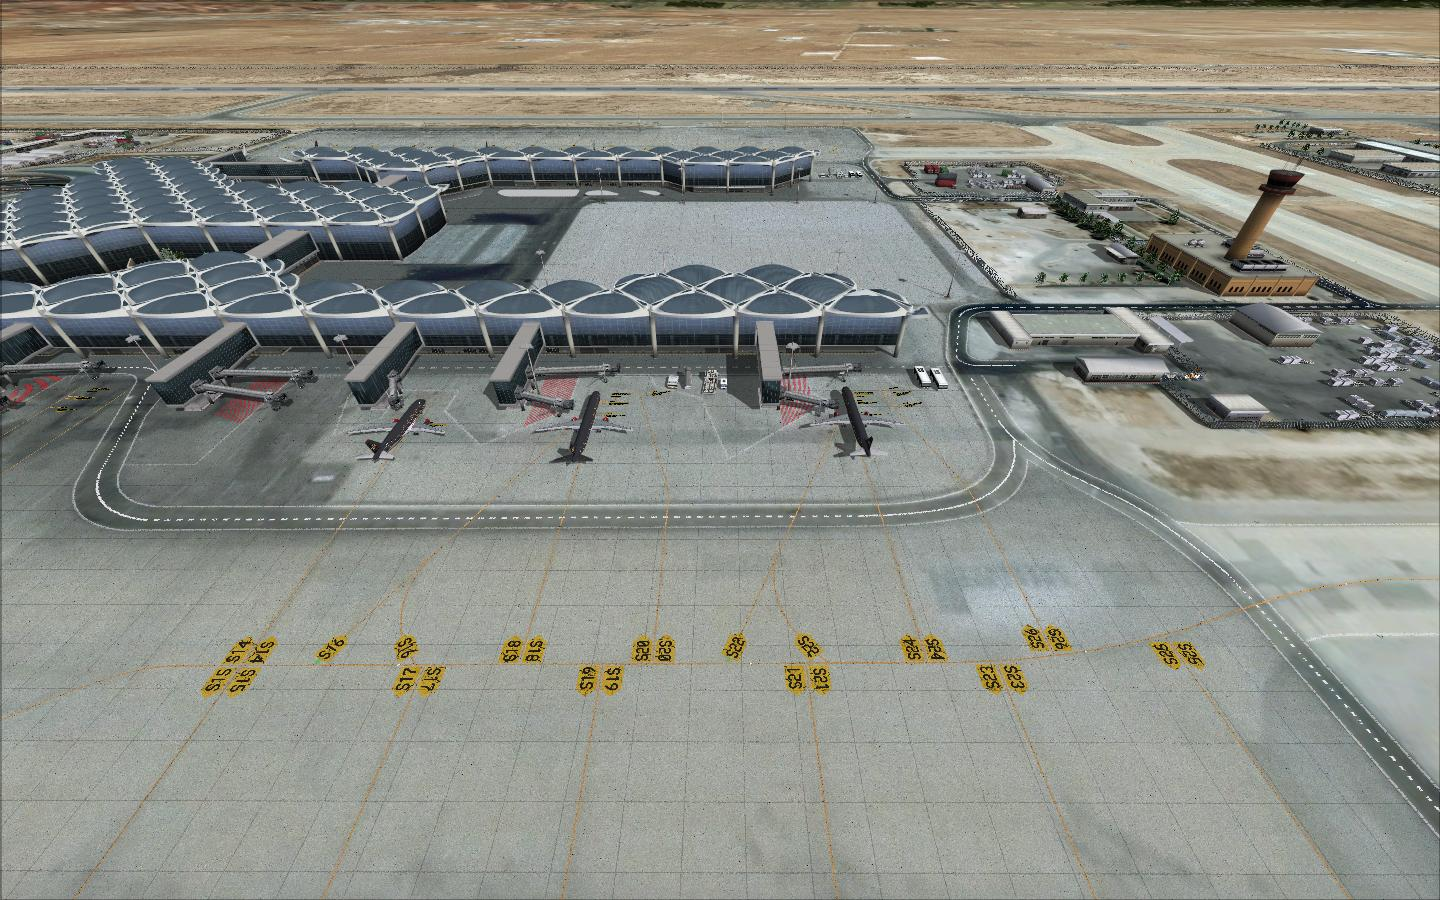 ARMI PROJECT - QUEEN ALIA INTERNATIONAL AIRPORT OJAI FS2004